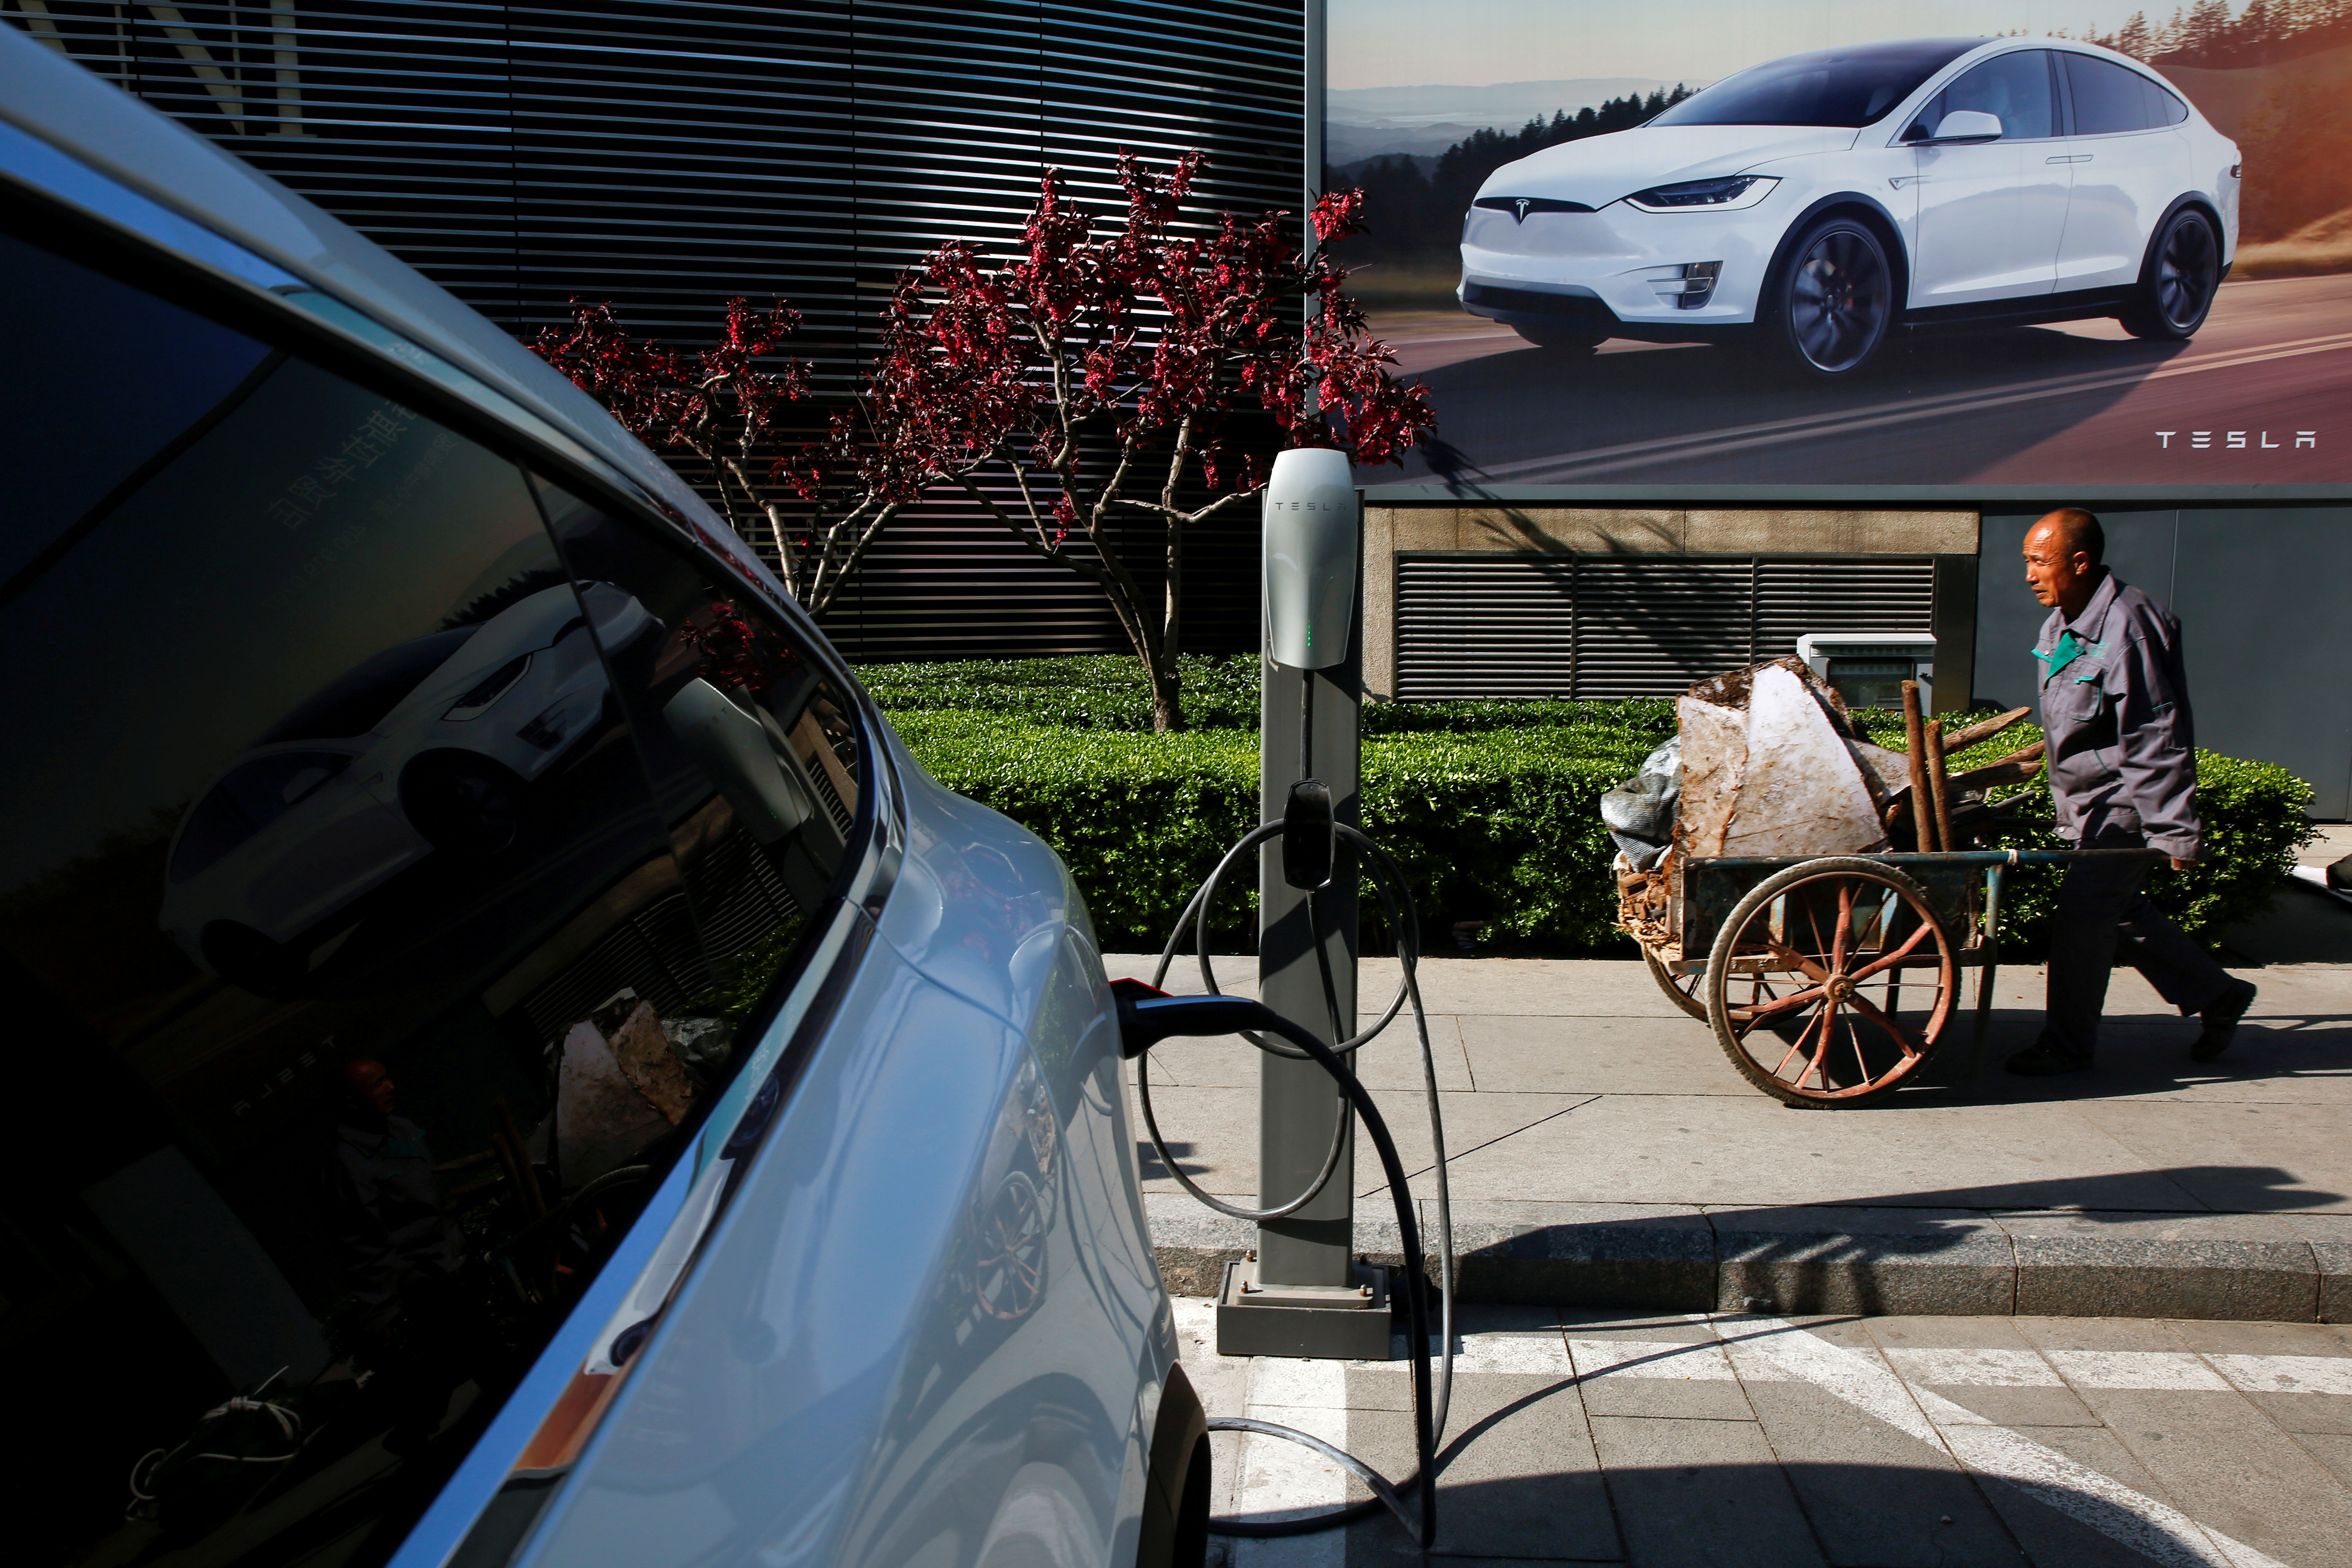 A Tesla car being charged at a charging station in Beijing, China, April 18, 2017.  REUTERS/Thomas Peter